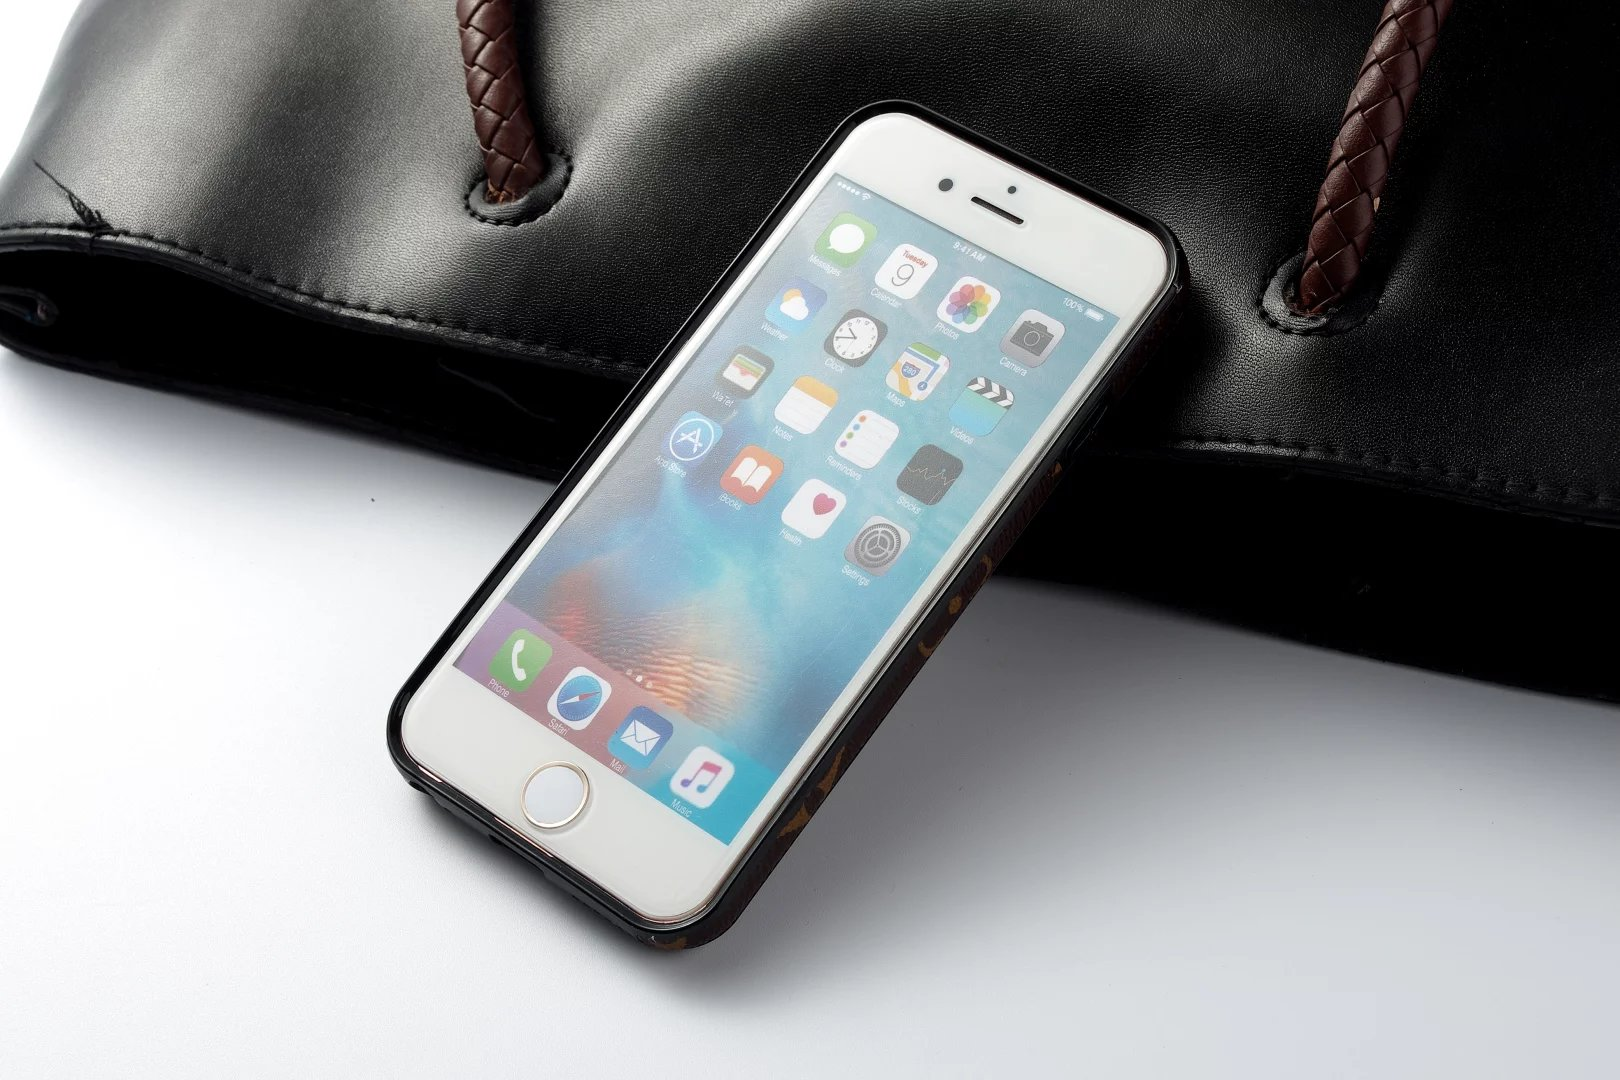 iphone silikonhülle selbst gestalten eigene iphone hülle erstellen Louis Vuitton iphone6 plus hülle iphone lederhülle handyhülle htc one 6lbst gestalten iphone 6 Plus und 6 handyhülle htc iphone 6 vorschau iphone 6 Plus hülle gravur